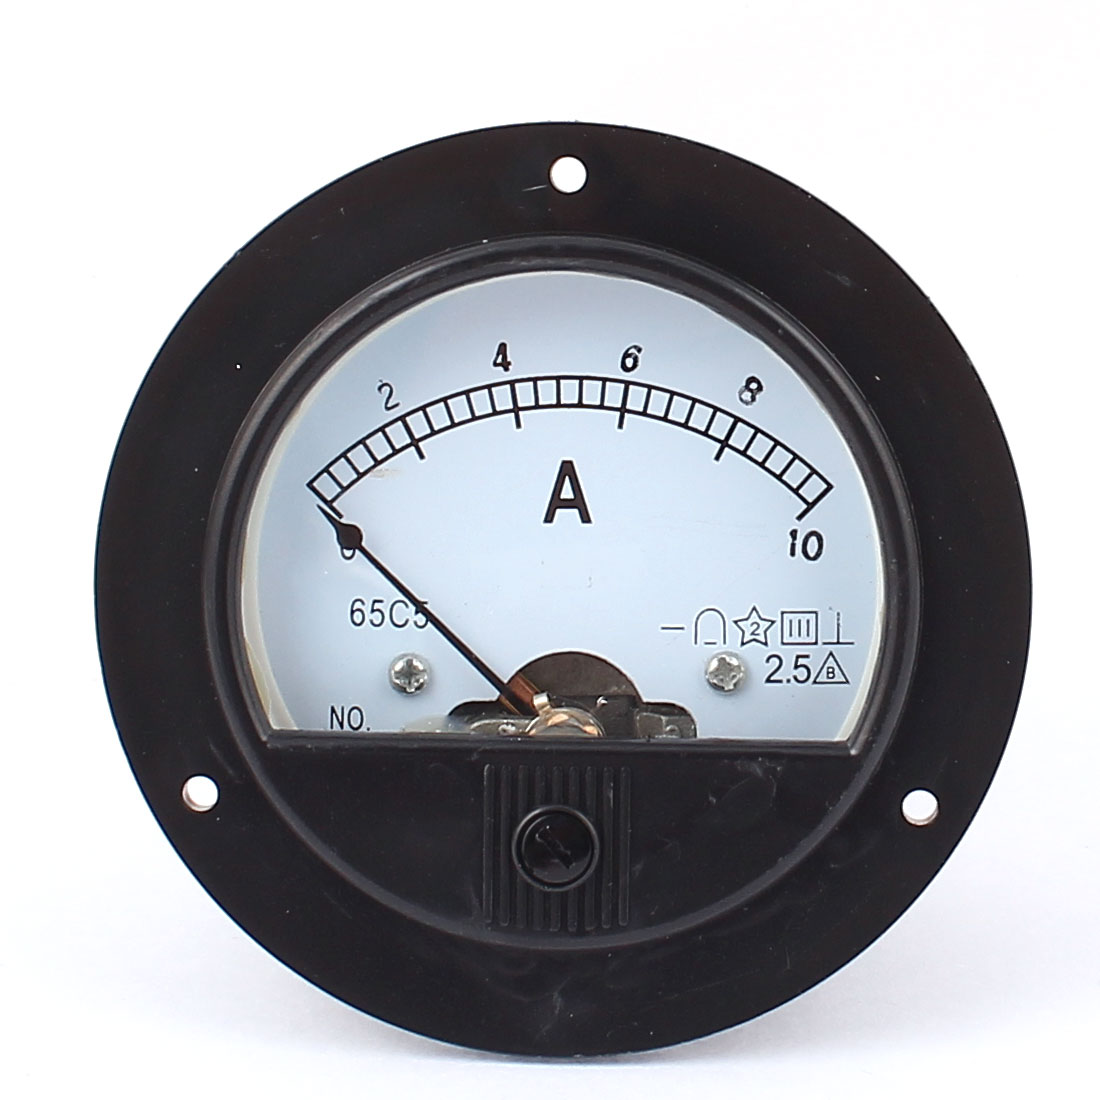 Unique Bargains DC 0-10A Round Panel Meter Gauge Current Tester Analogue Analog Ammeter